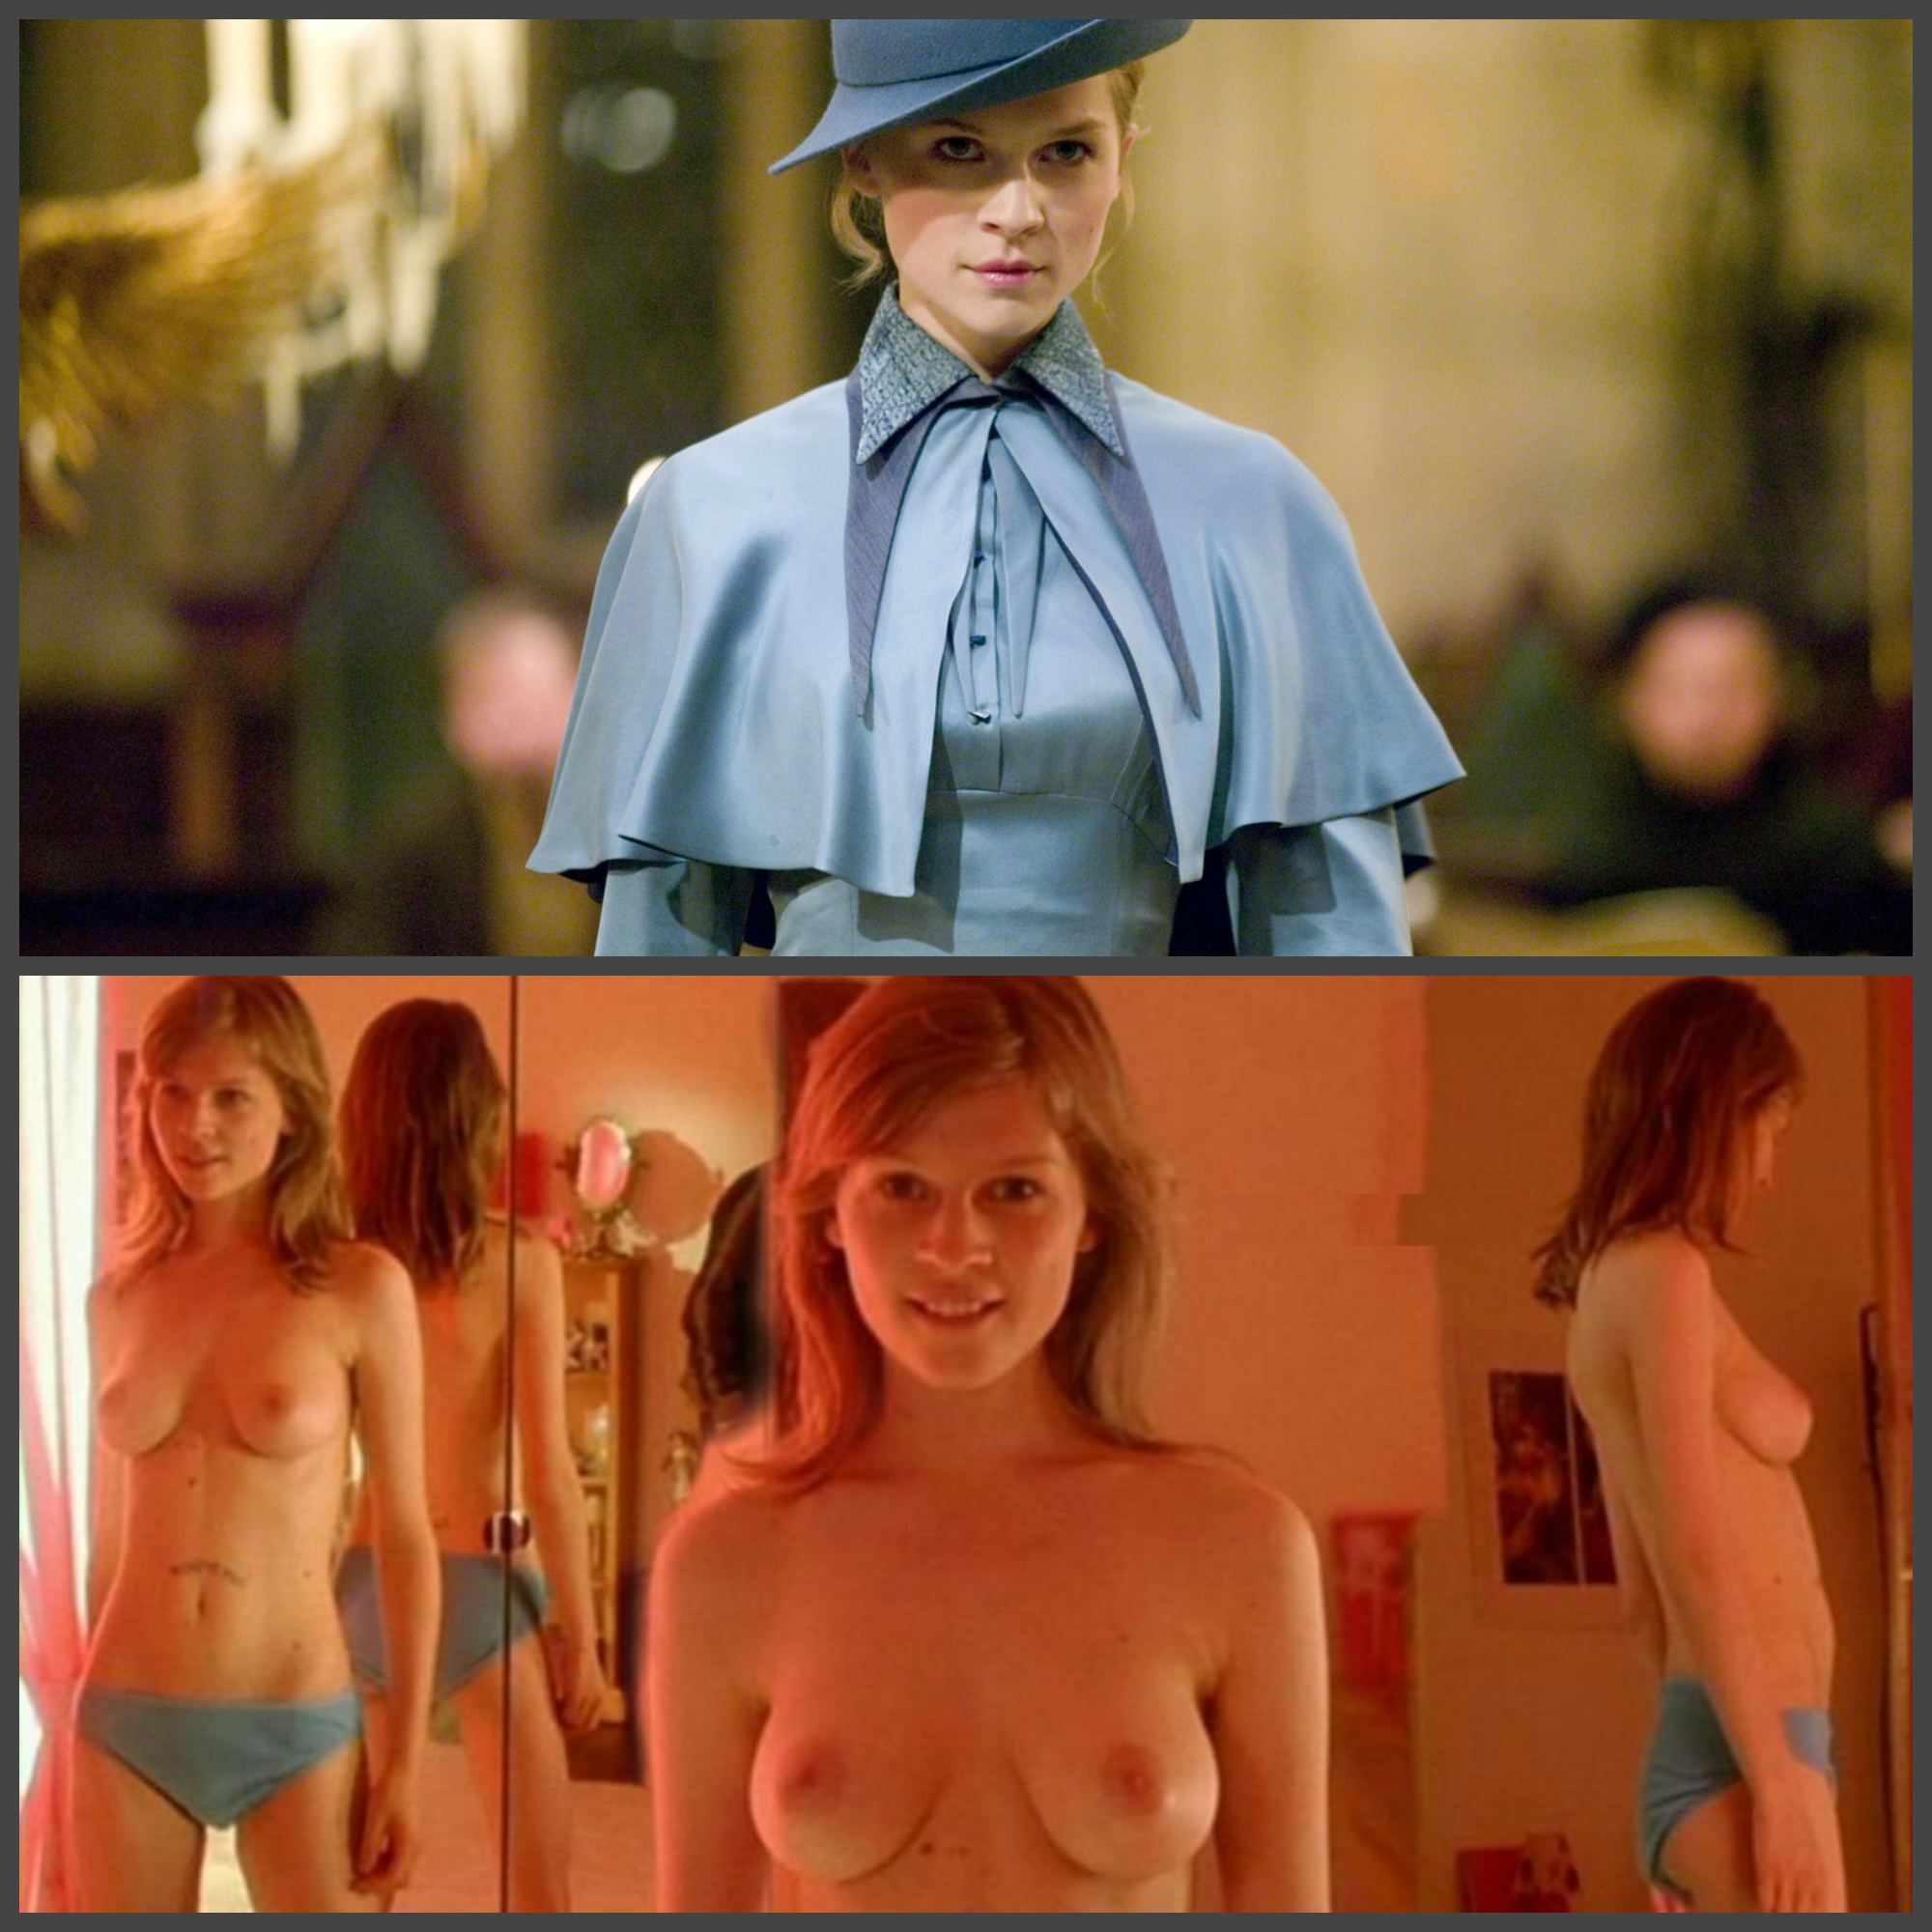 Hentai Pics Tagged With Fleur Delacour